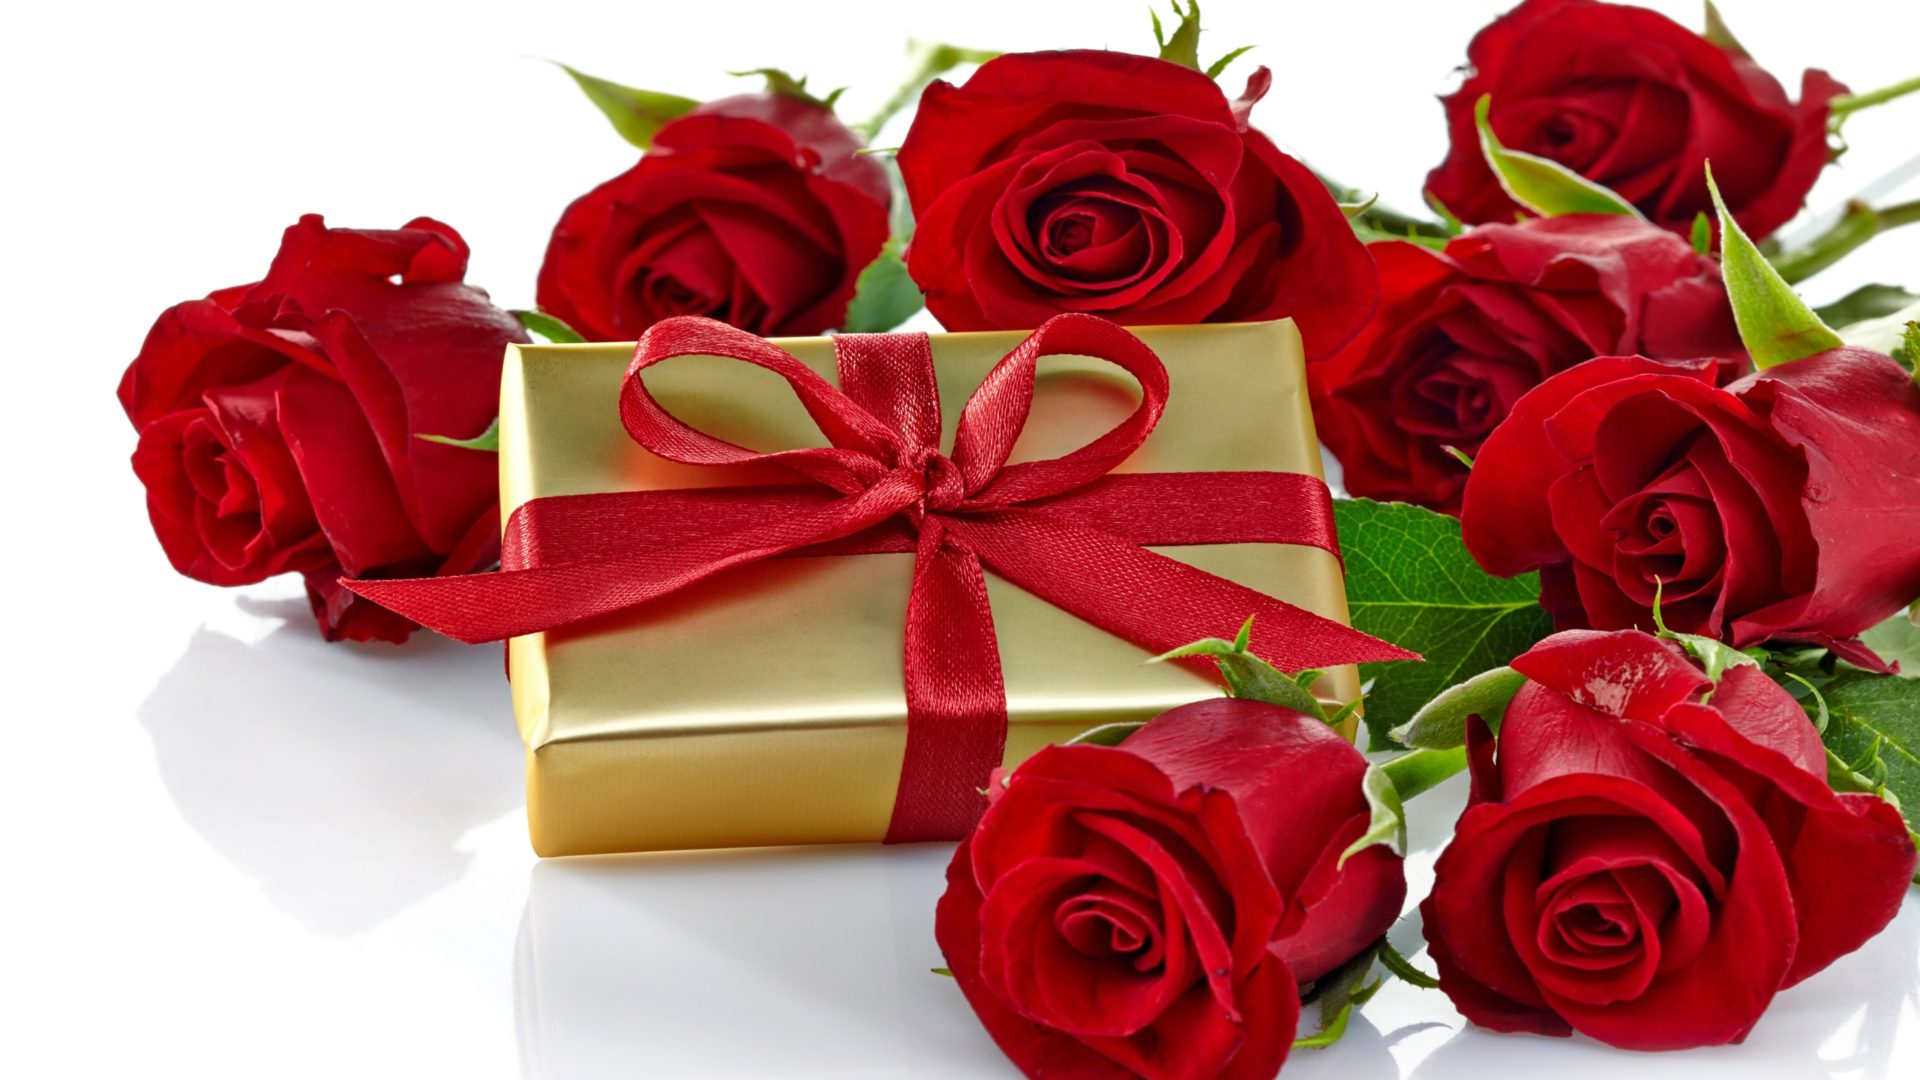 Cute Roses Wallpapers With Wordings Roses Romantic Love Gift Bow Nature Flowers Hd Wallpaper